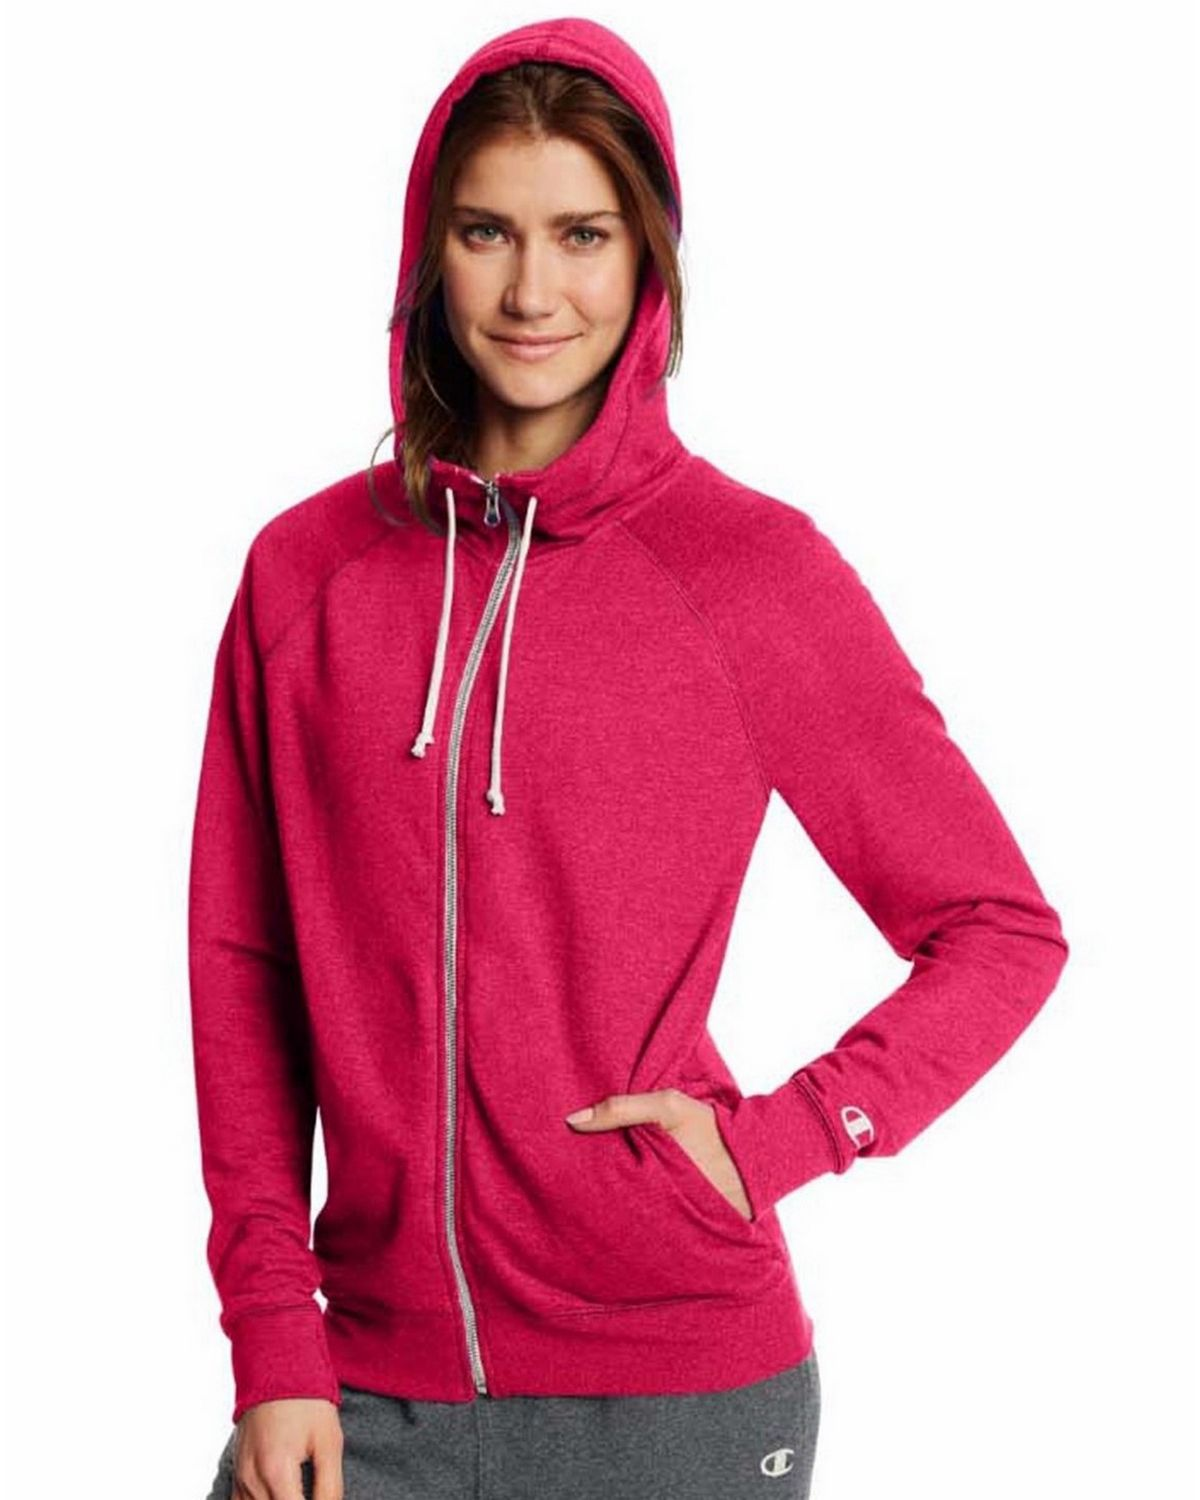 Champion Women's French Terry Full-Zip Jacket, Granite Heather, M W0941